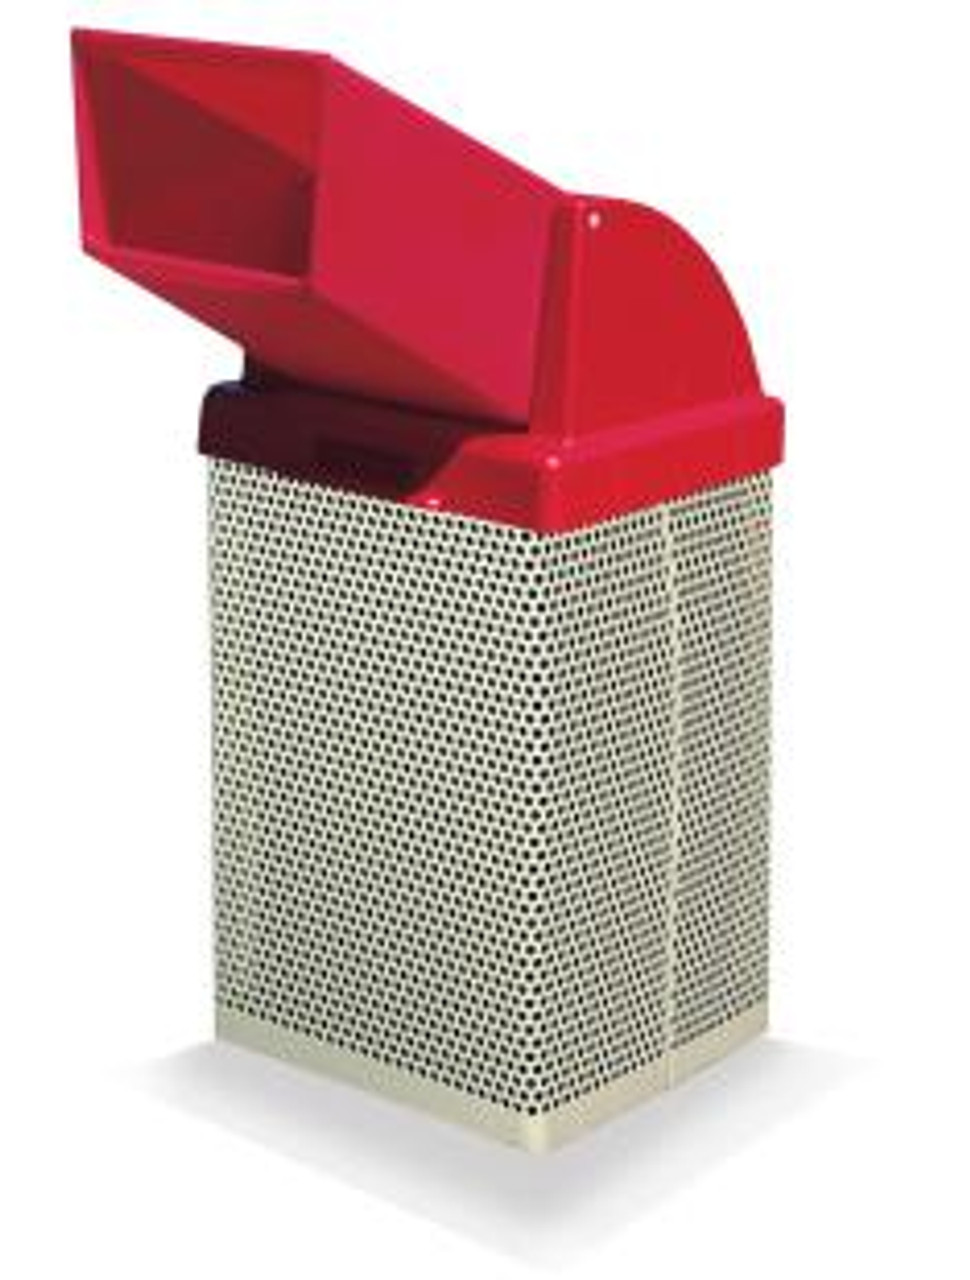 Drive Up Chute Waste Container MF3056